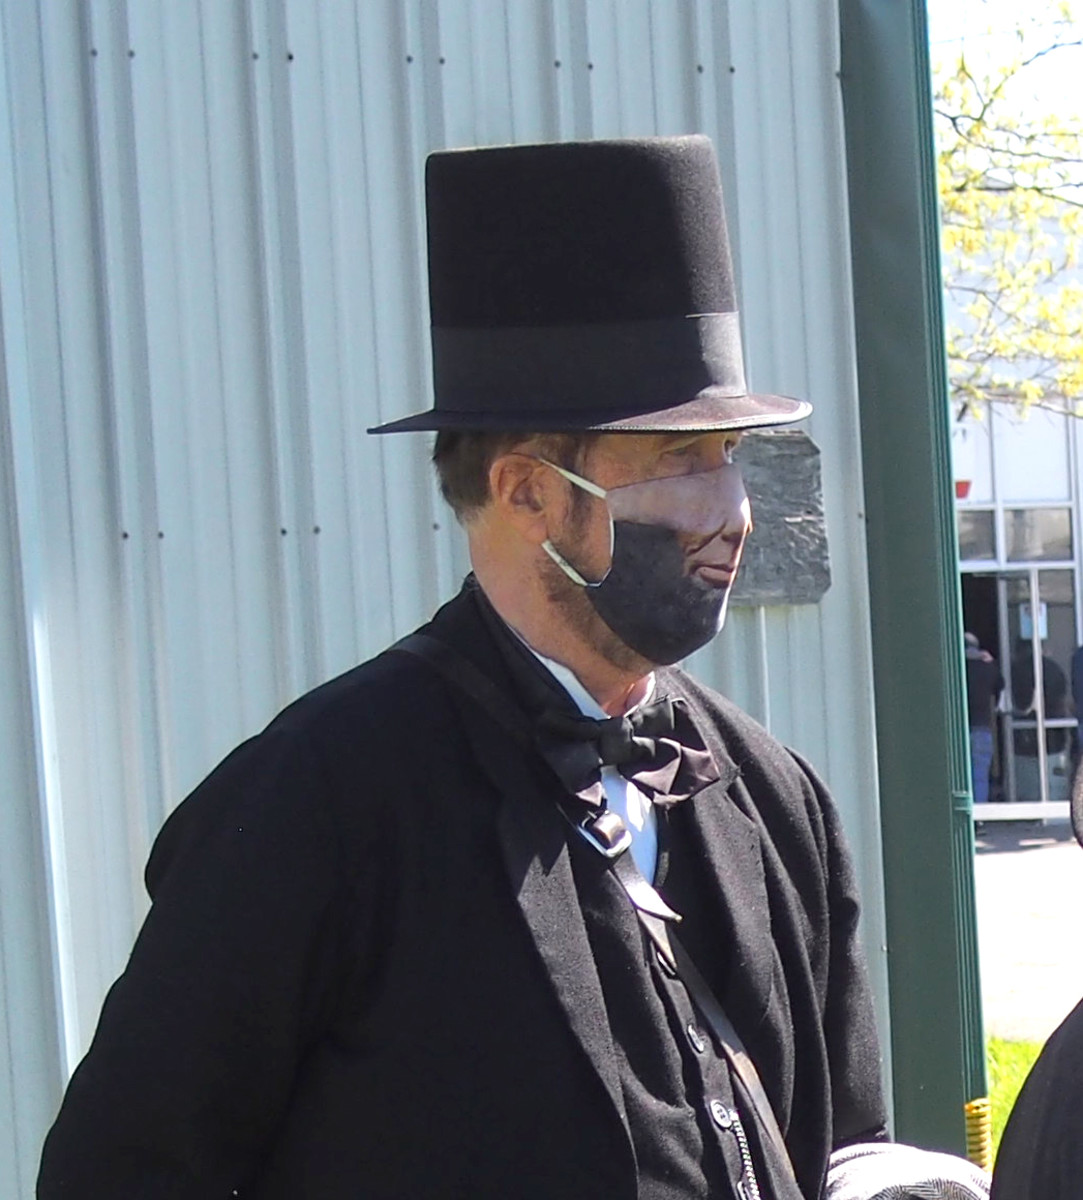 Lincoln impersonator wearing a mask depicting a nose, mouth, and beard.